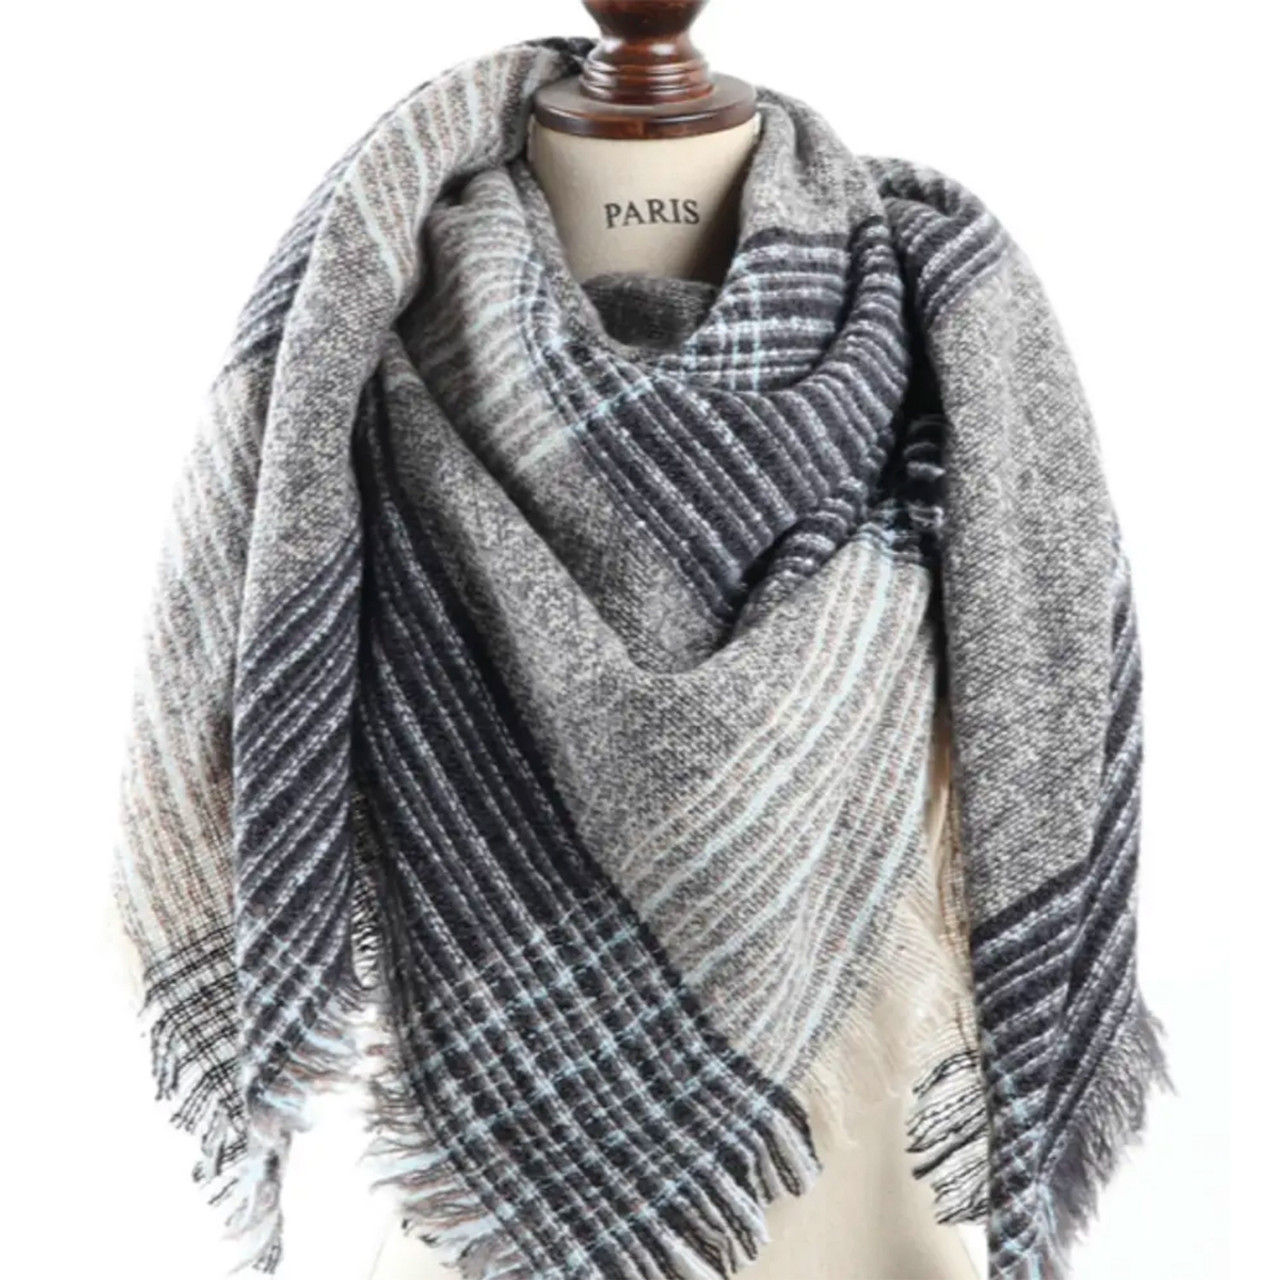 Plaid Square Blanket Scarf In Grey Blue Green Envy Boutique Vt